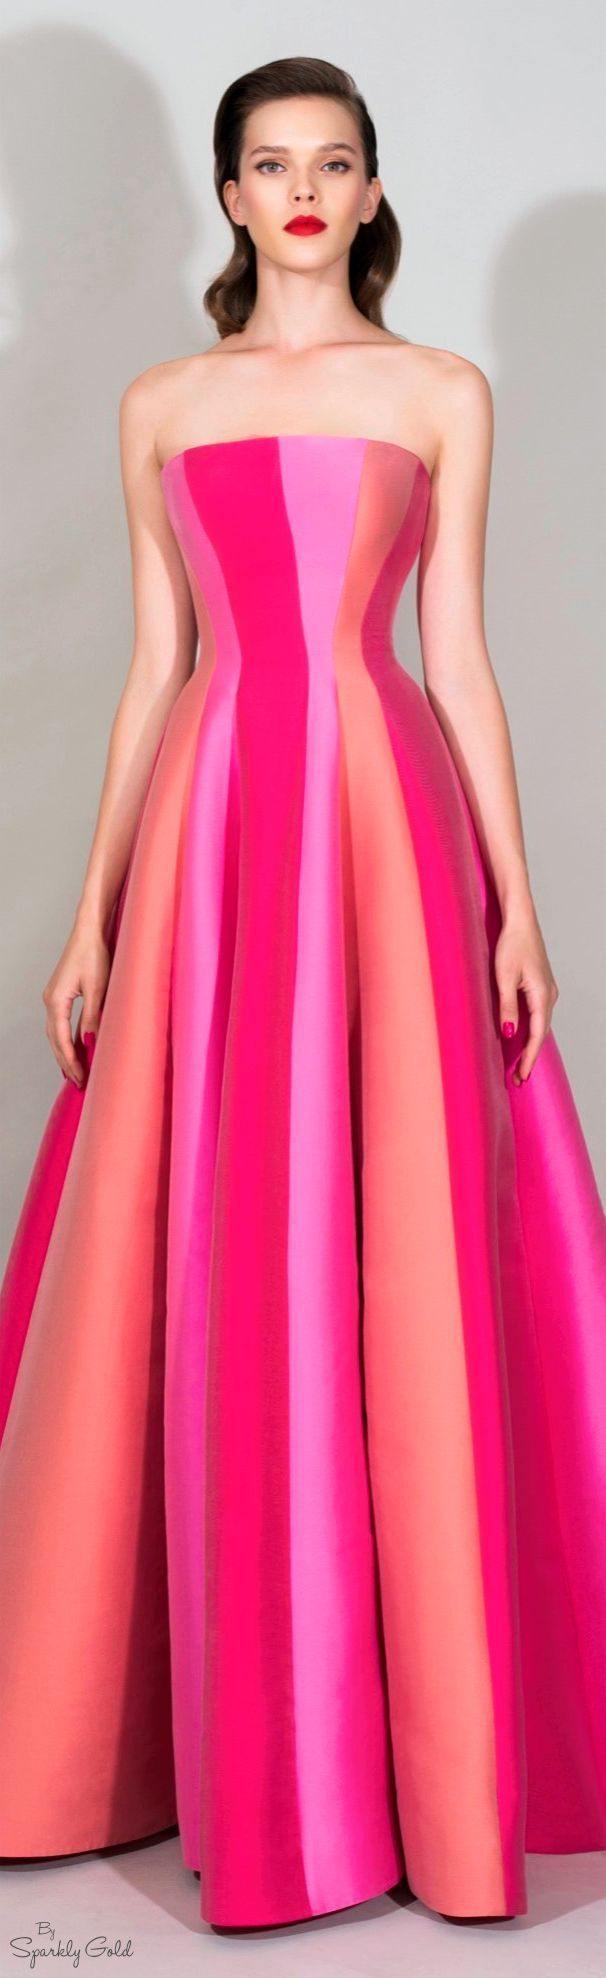 81 best Prom images on Pinterest | Dream dress, Party dresses and ...